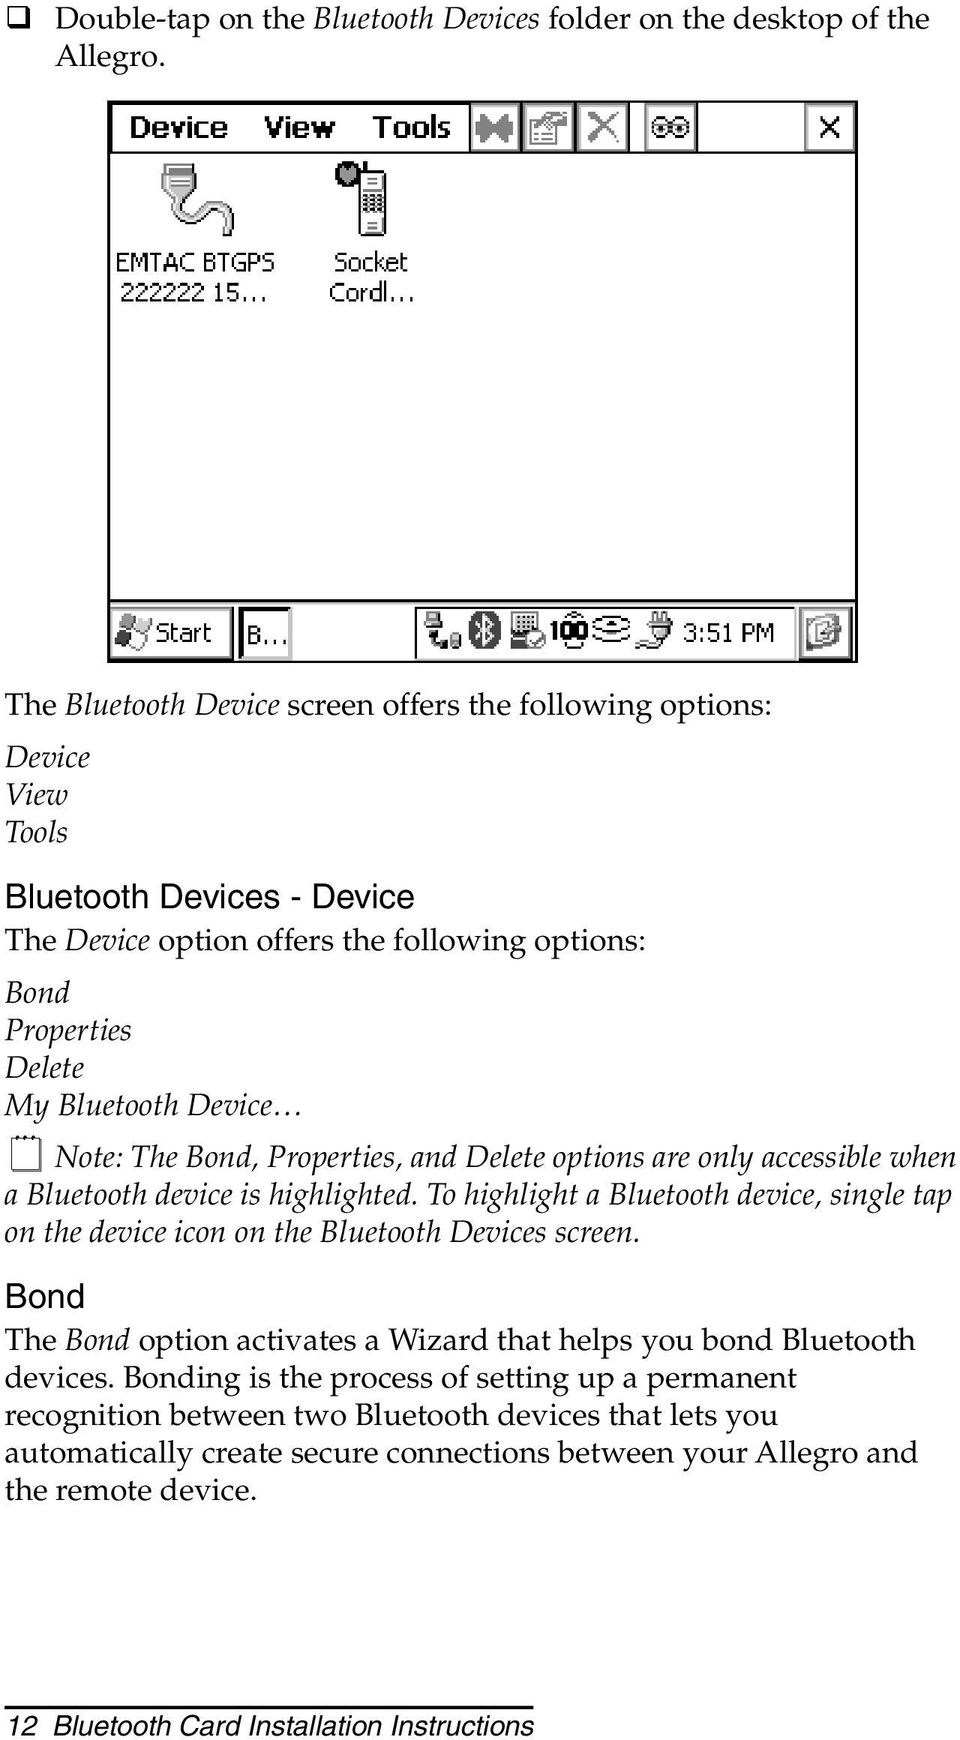 Note: The Bond, Properties, and Delete options are only accessible when a Bluetooth device is highlighted.